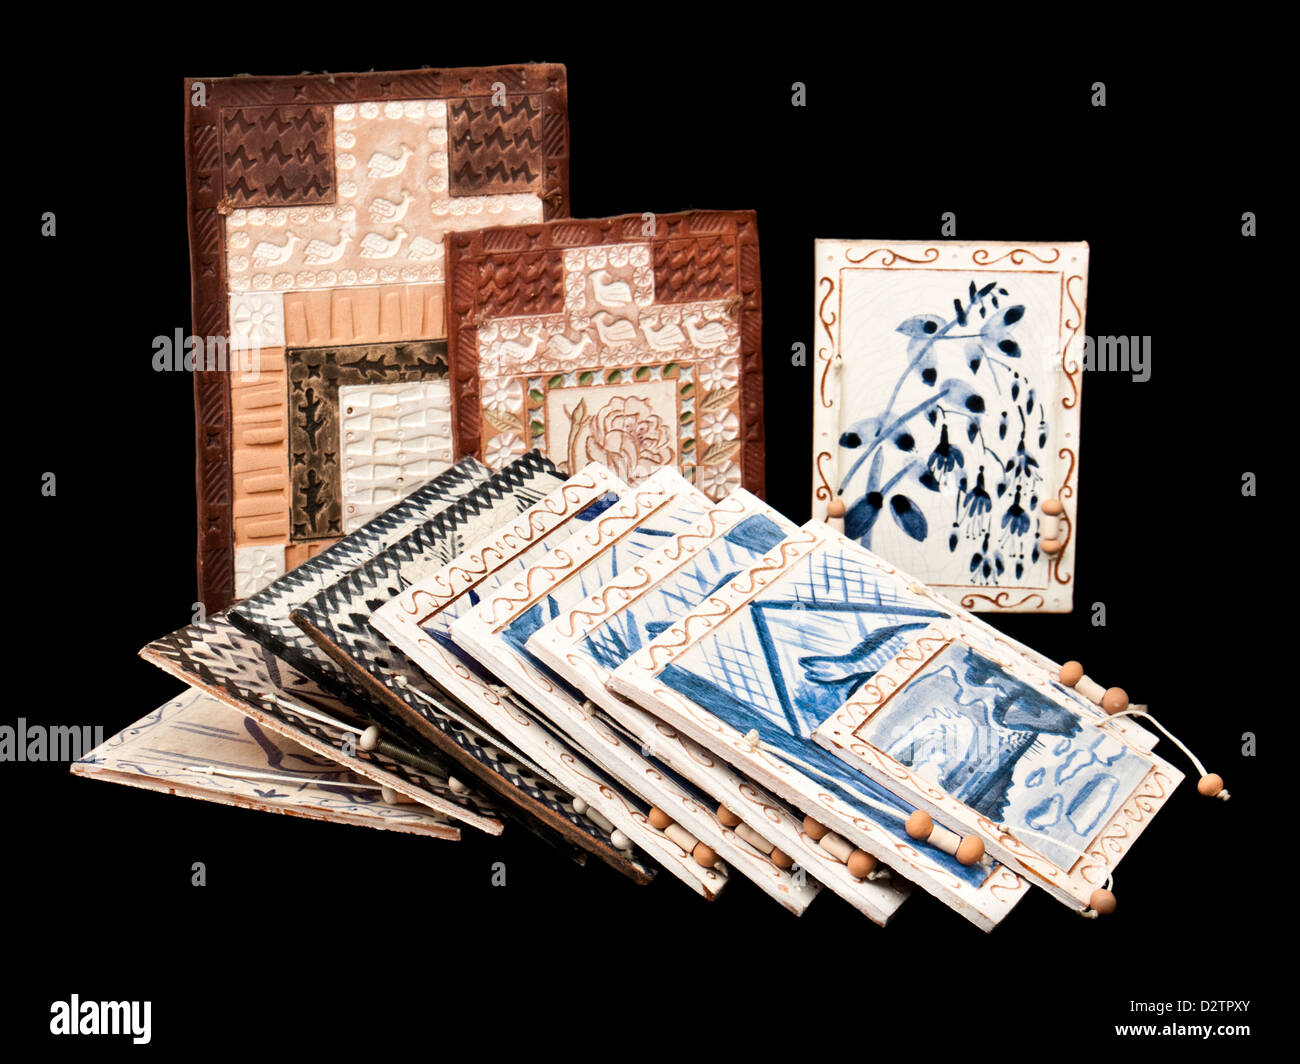 Selection of vintage handmade African ceramic wall tiles - Stock Image